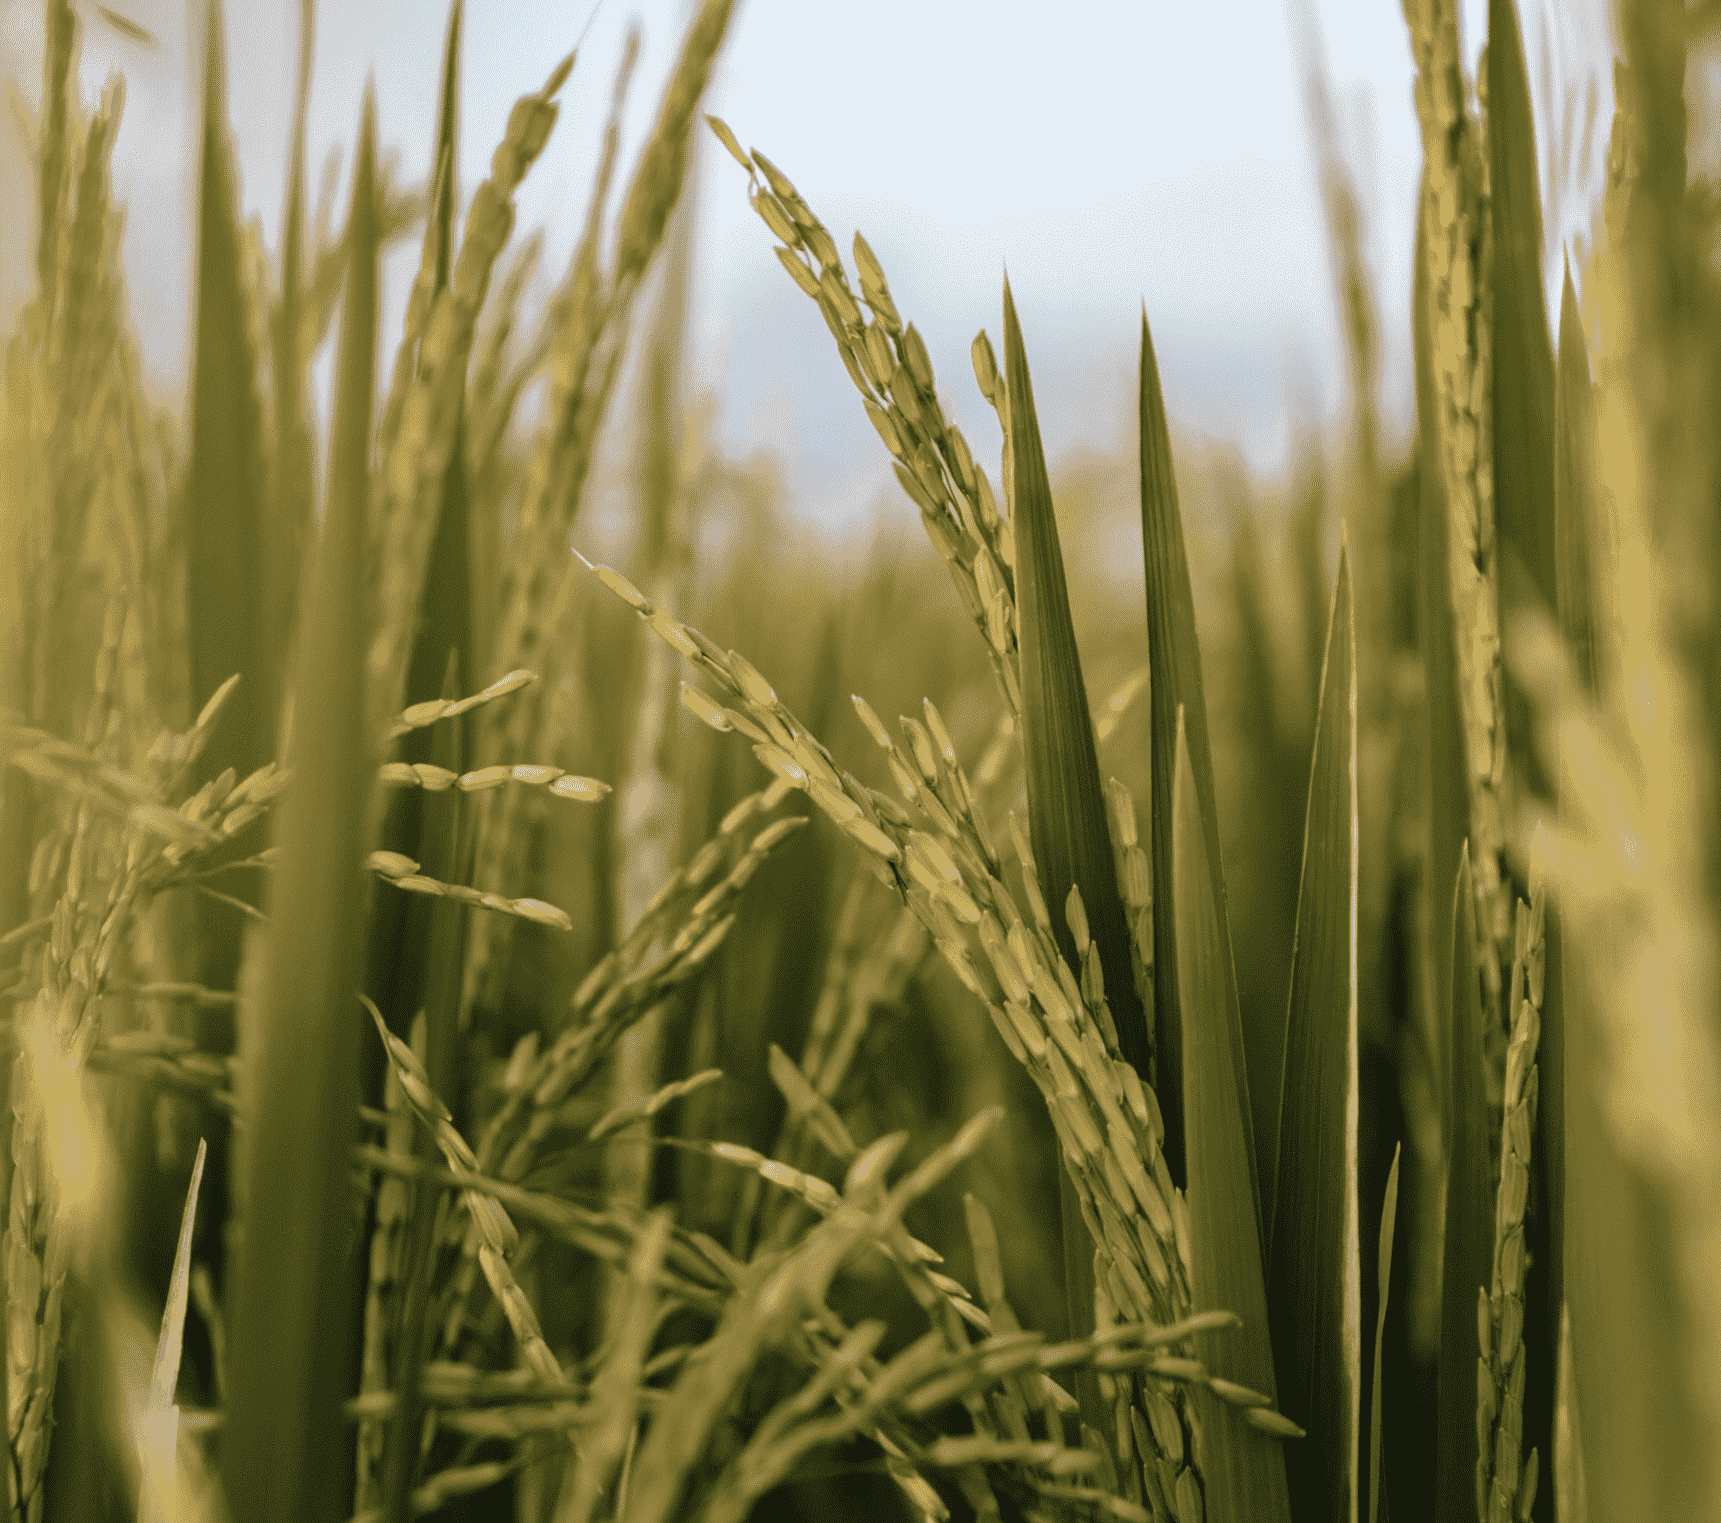 Identification of Rice Leaf Diseases using Deep Convolutional Neural Networks